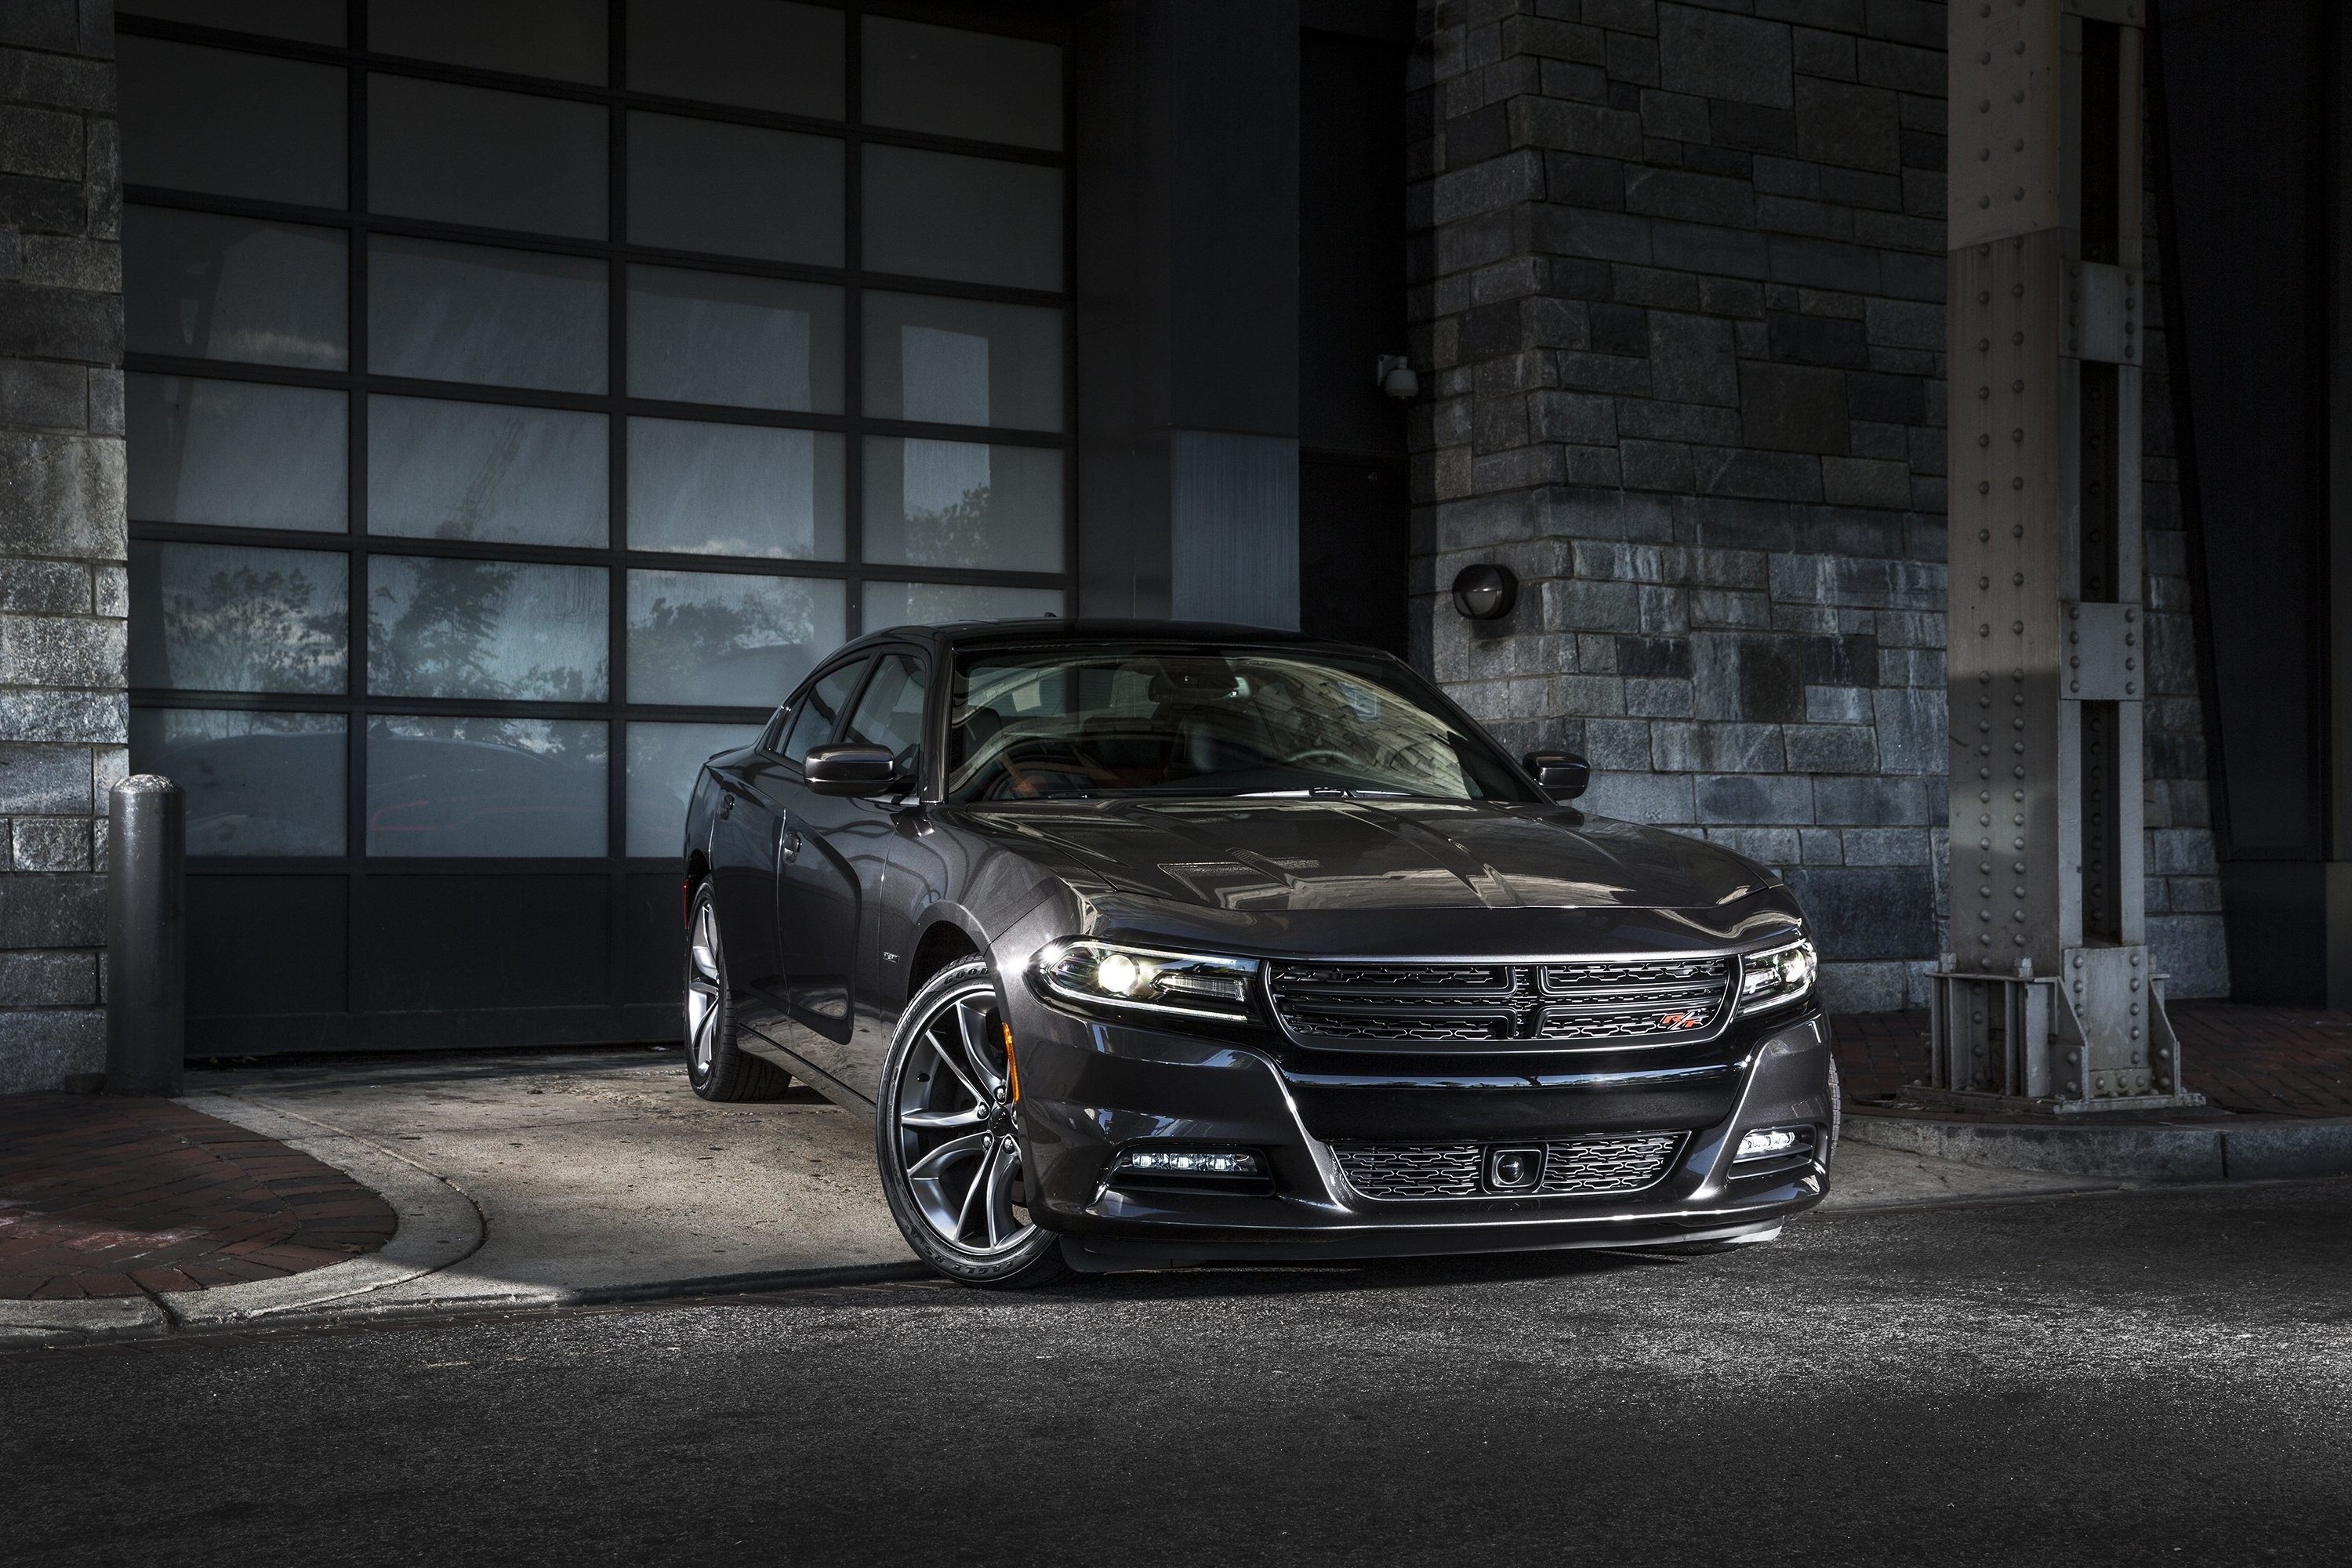 2015 Dodge Charger R-T (L-D) muscle wallpaper | | 504197 |  WallpaperUP